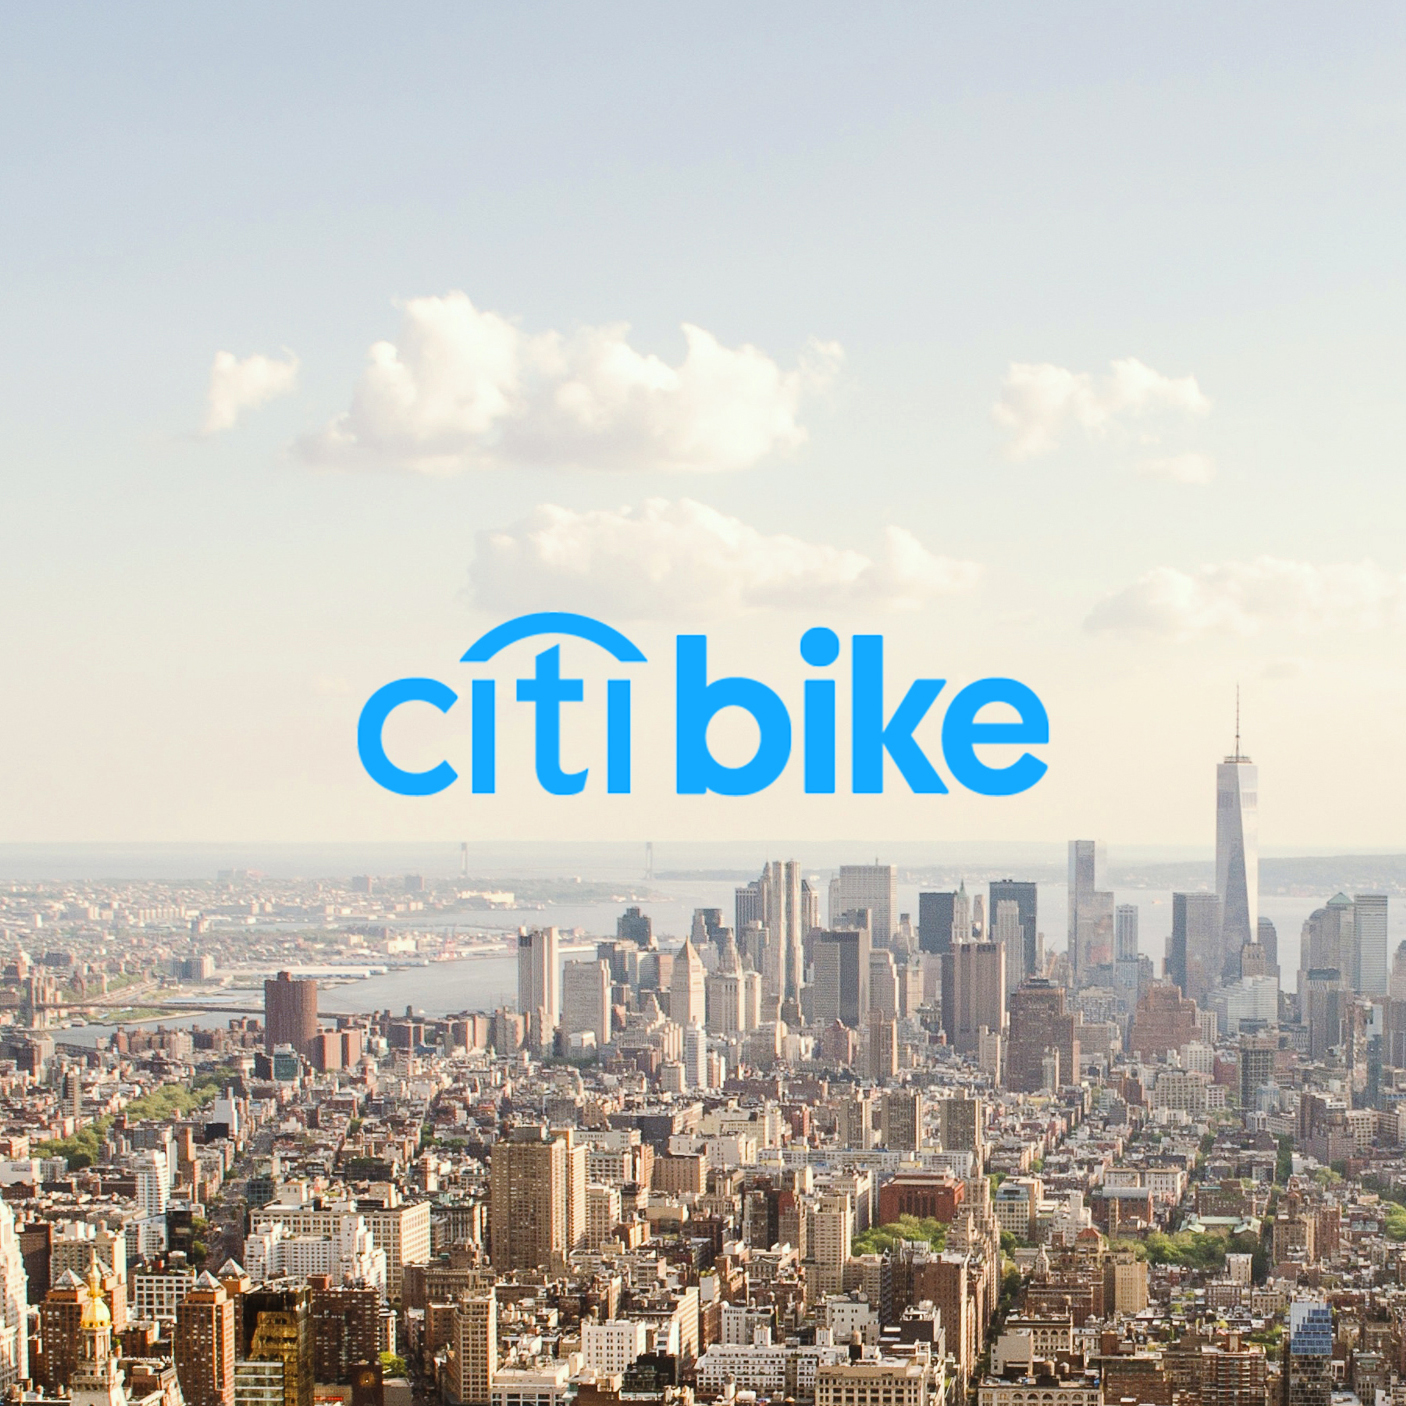 citibikeheaderopt1_sq.jpg